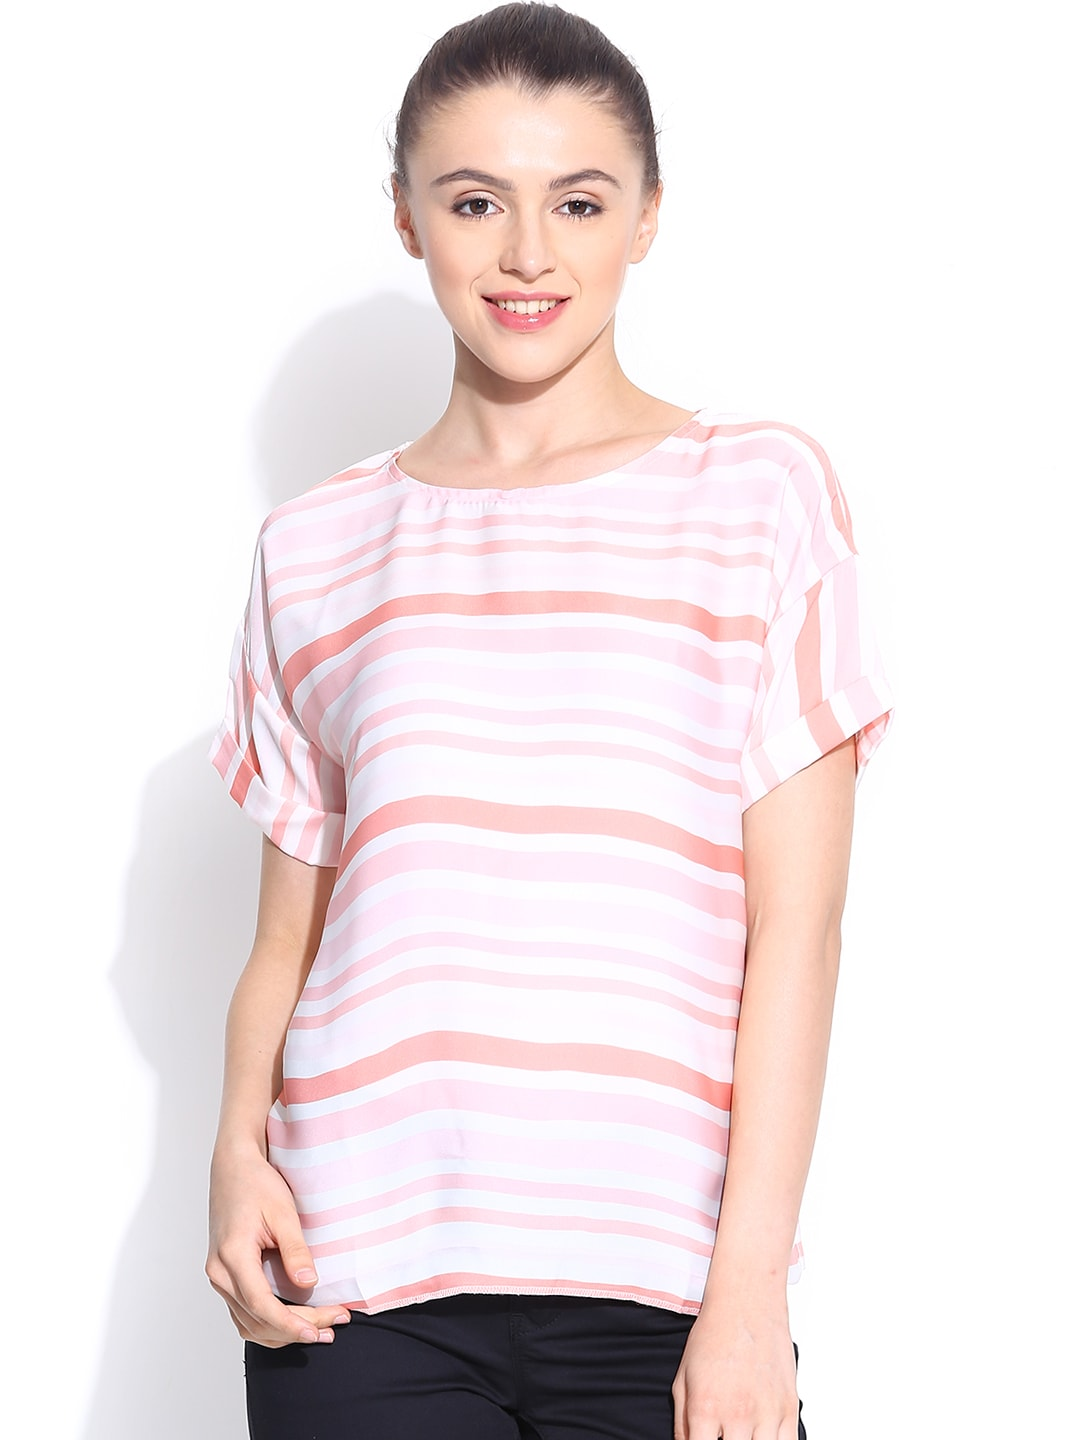 Pepe Jeans Women Off-White & Peach-Coloured Striped Top